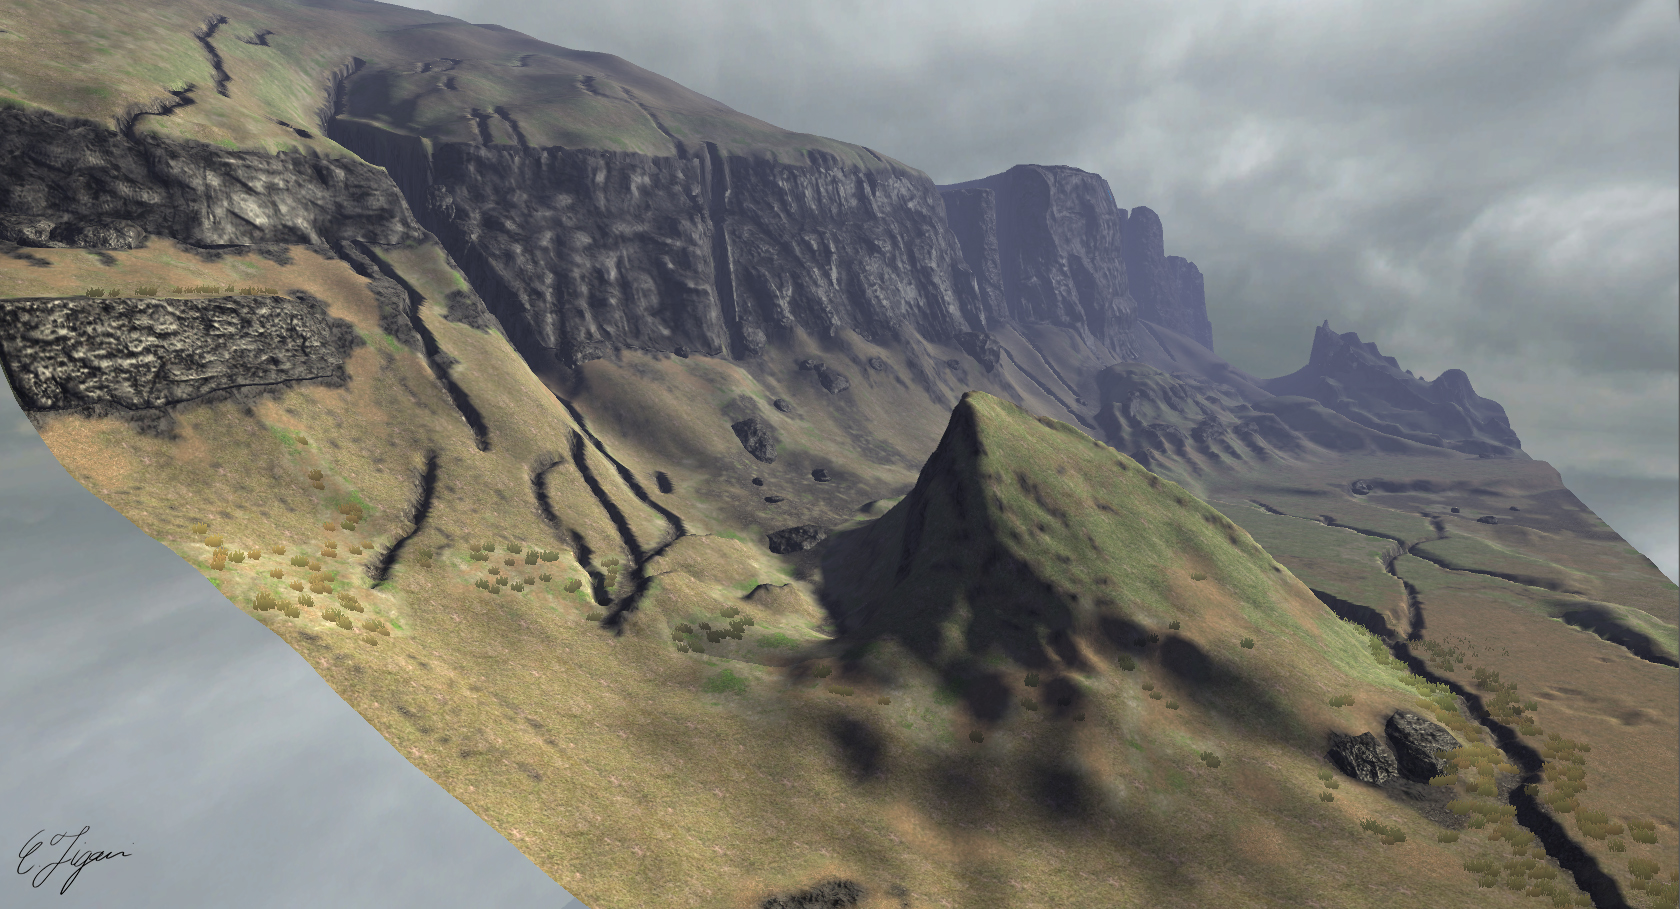 how to create a terrain in unity using a script